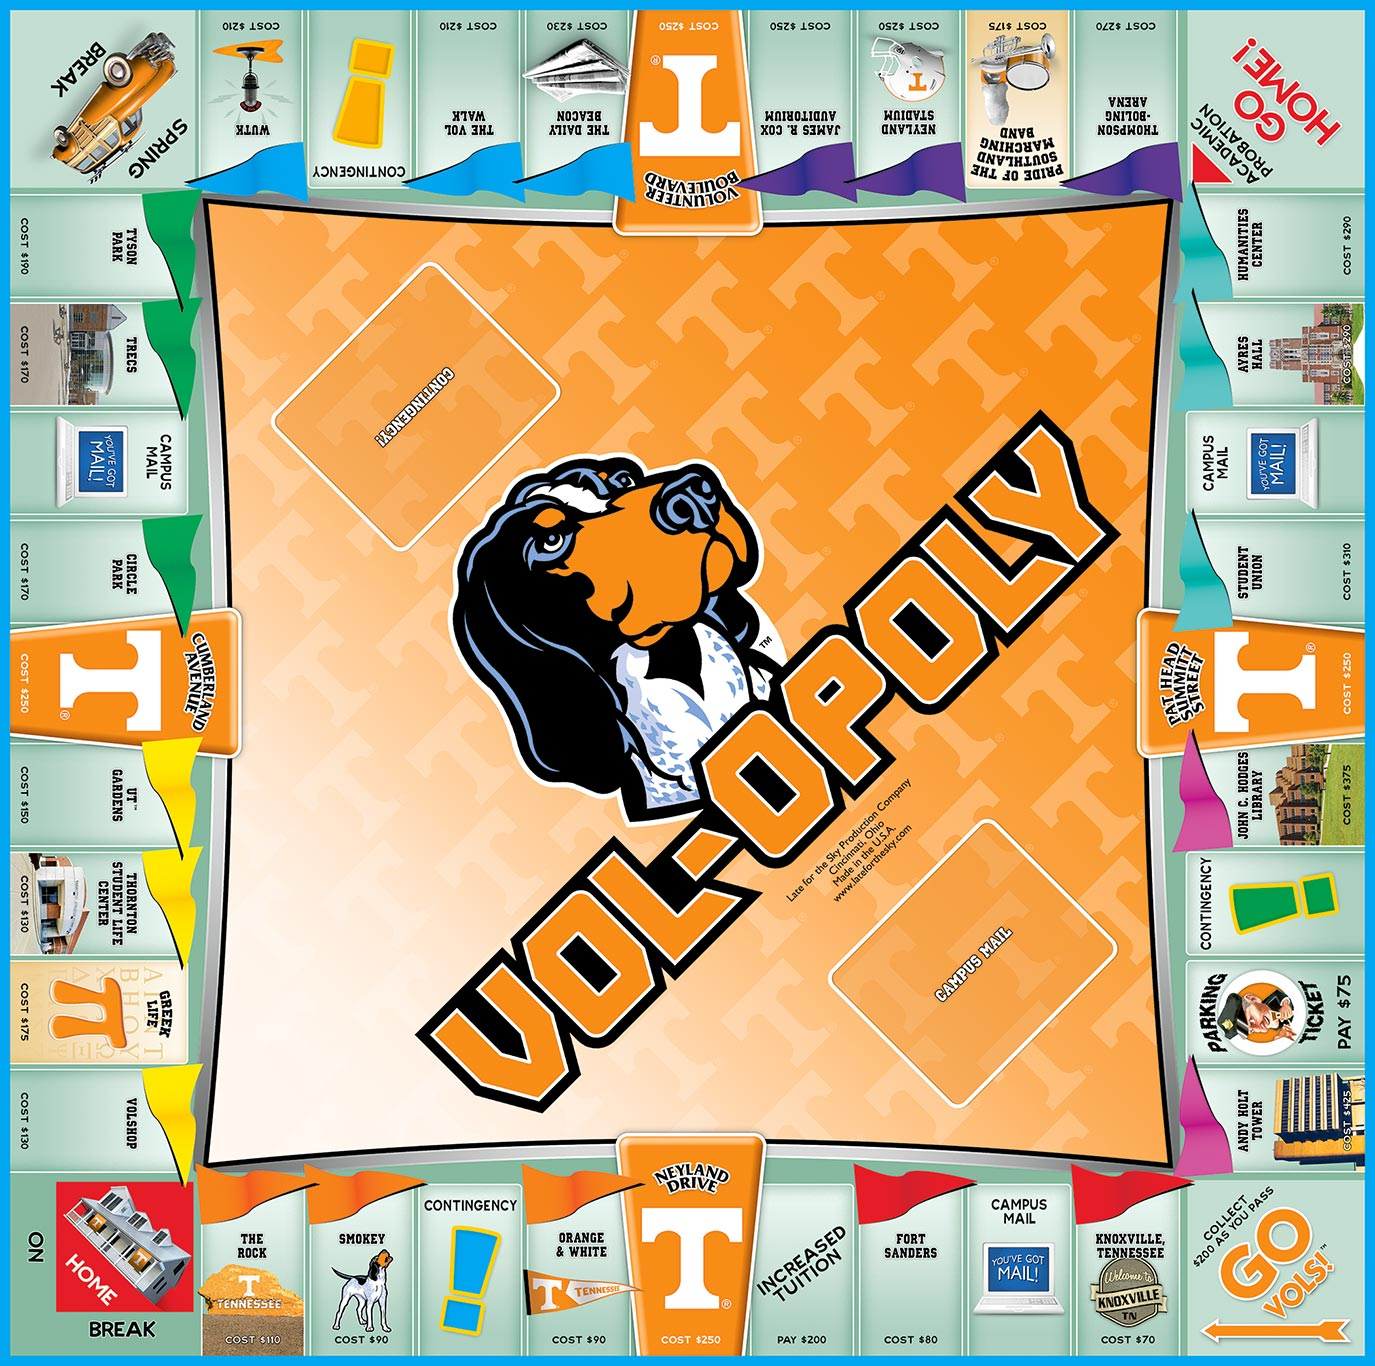 VOL-OPOLY Board Game